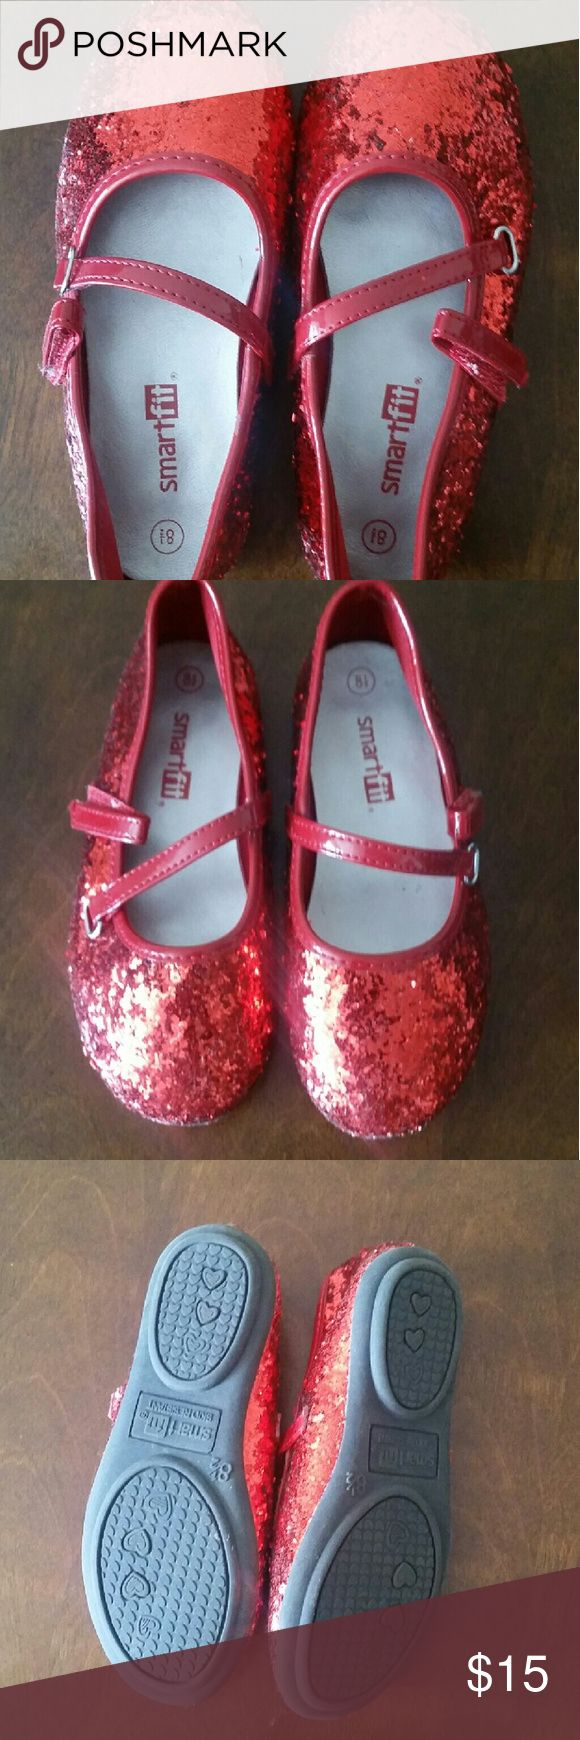 Girl's red shoes Adorable little red shoes for toddlers, size 8.5, barely worn Shoes Dress Shoes